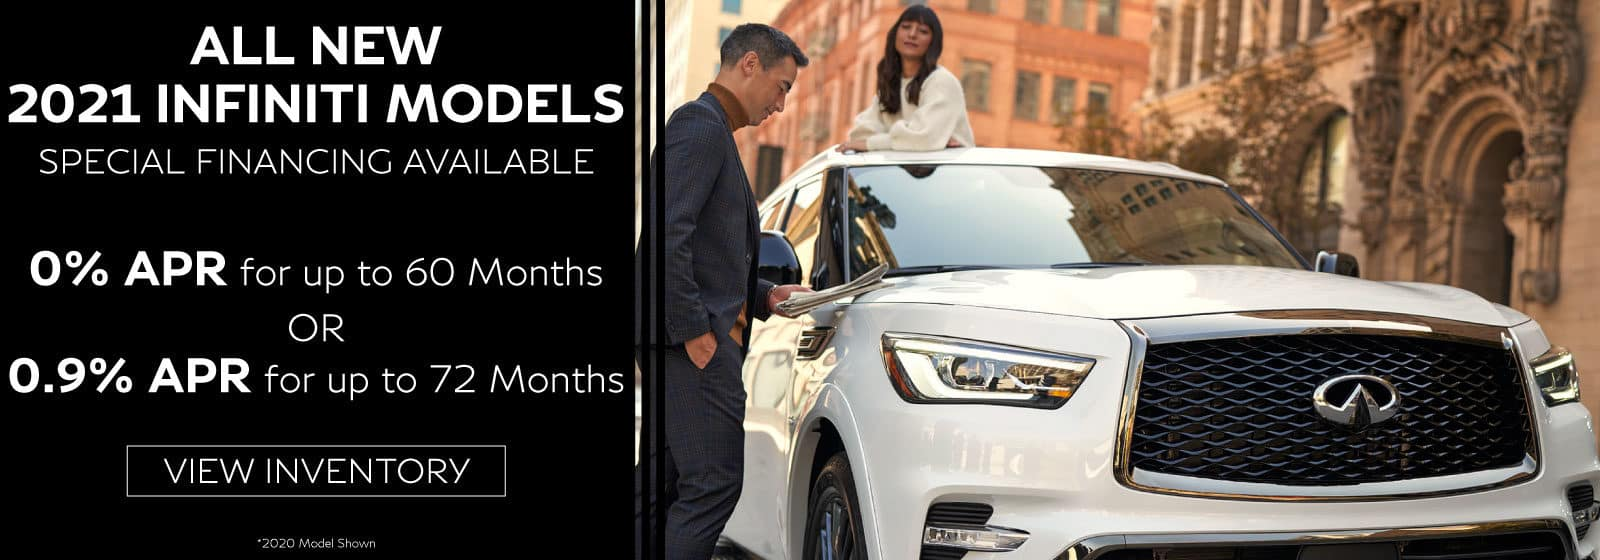 all new INFINITI models 0% for up to 60 months or .9% for up to 72 months